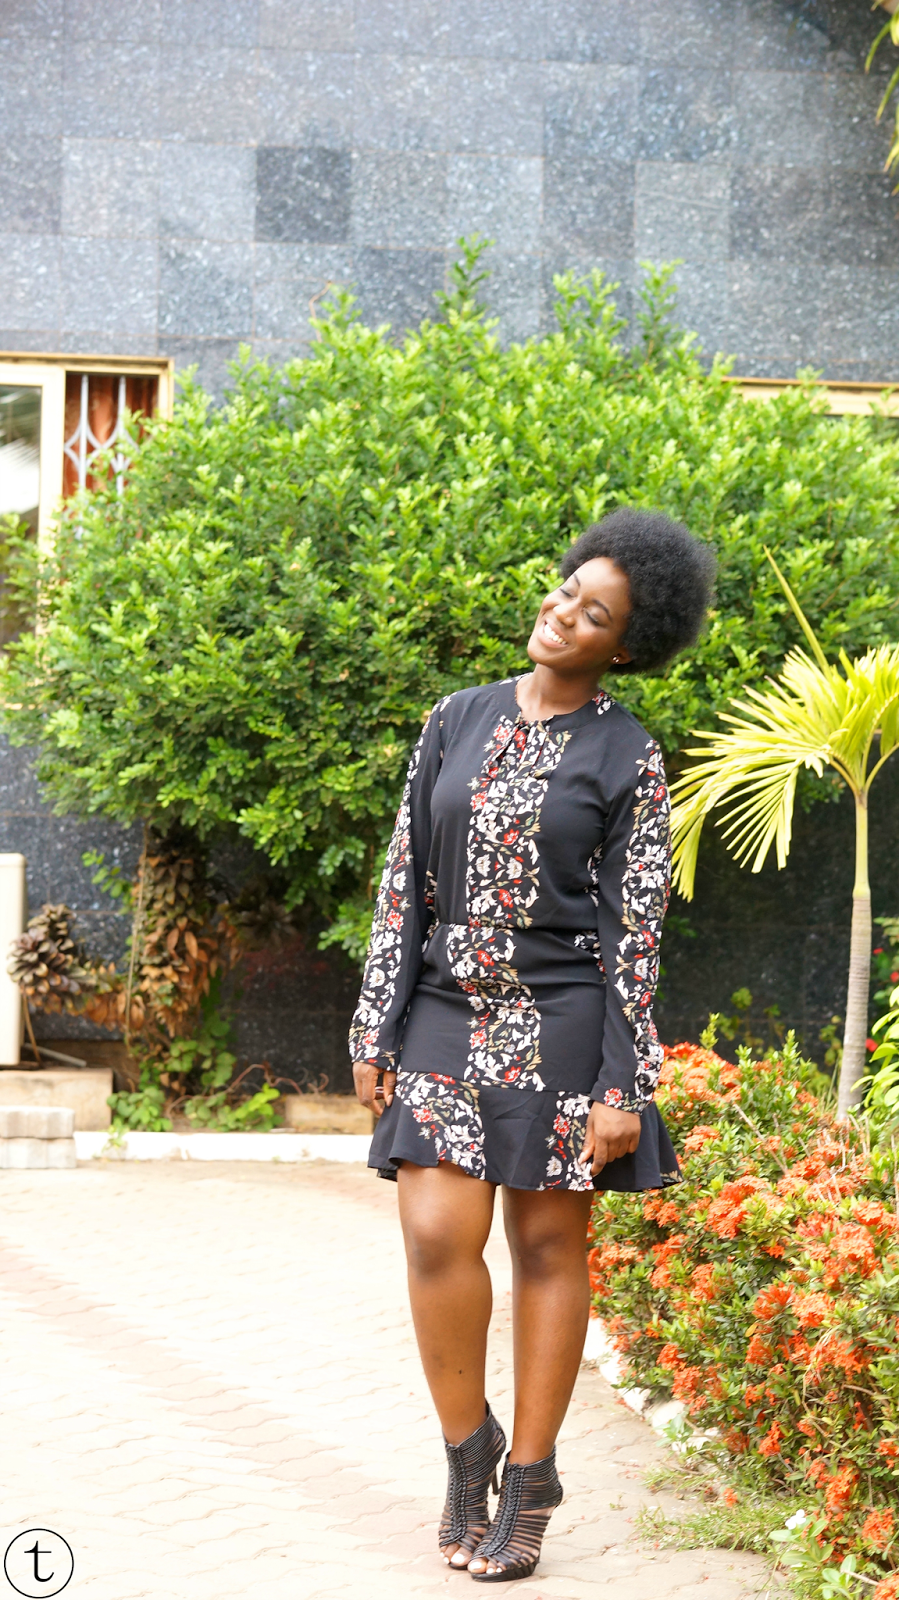 black dress with floral prints from pretty little thing outfit